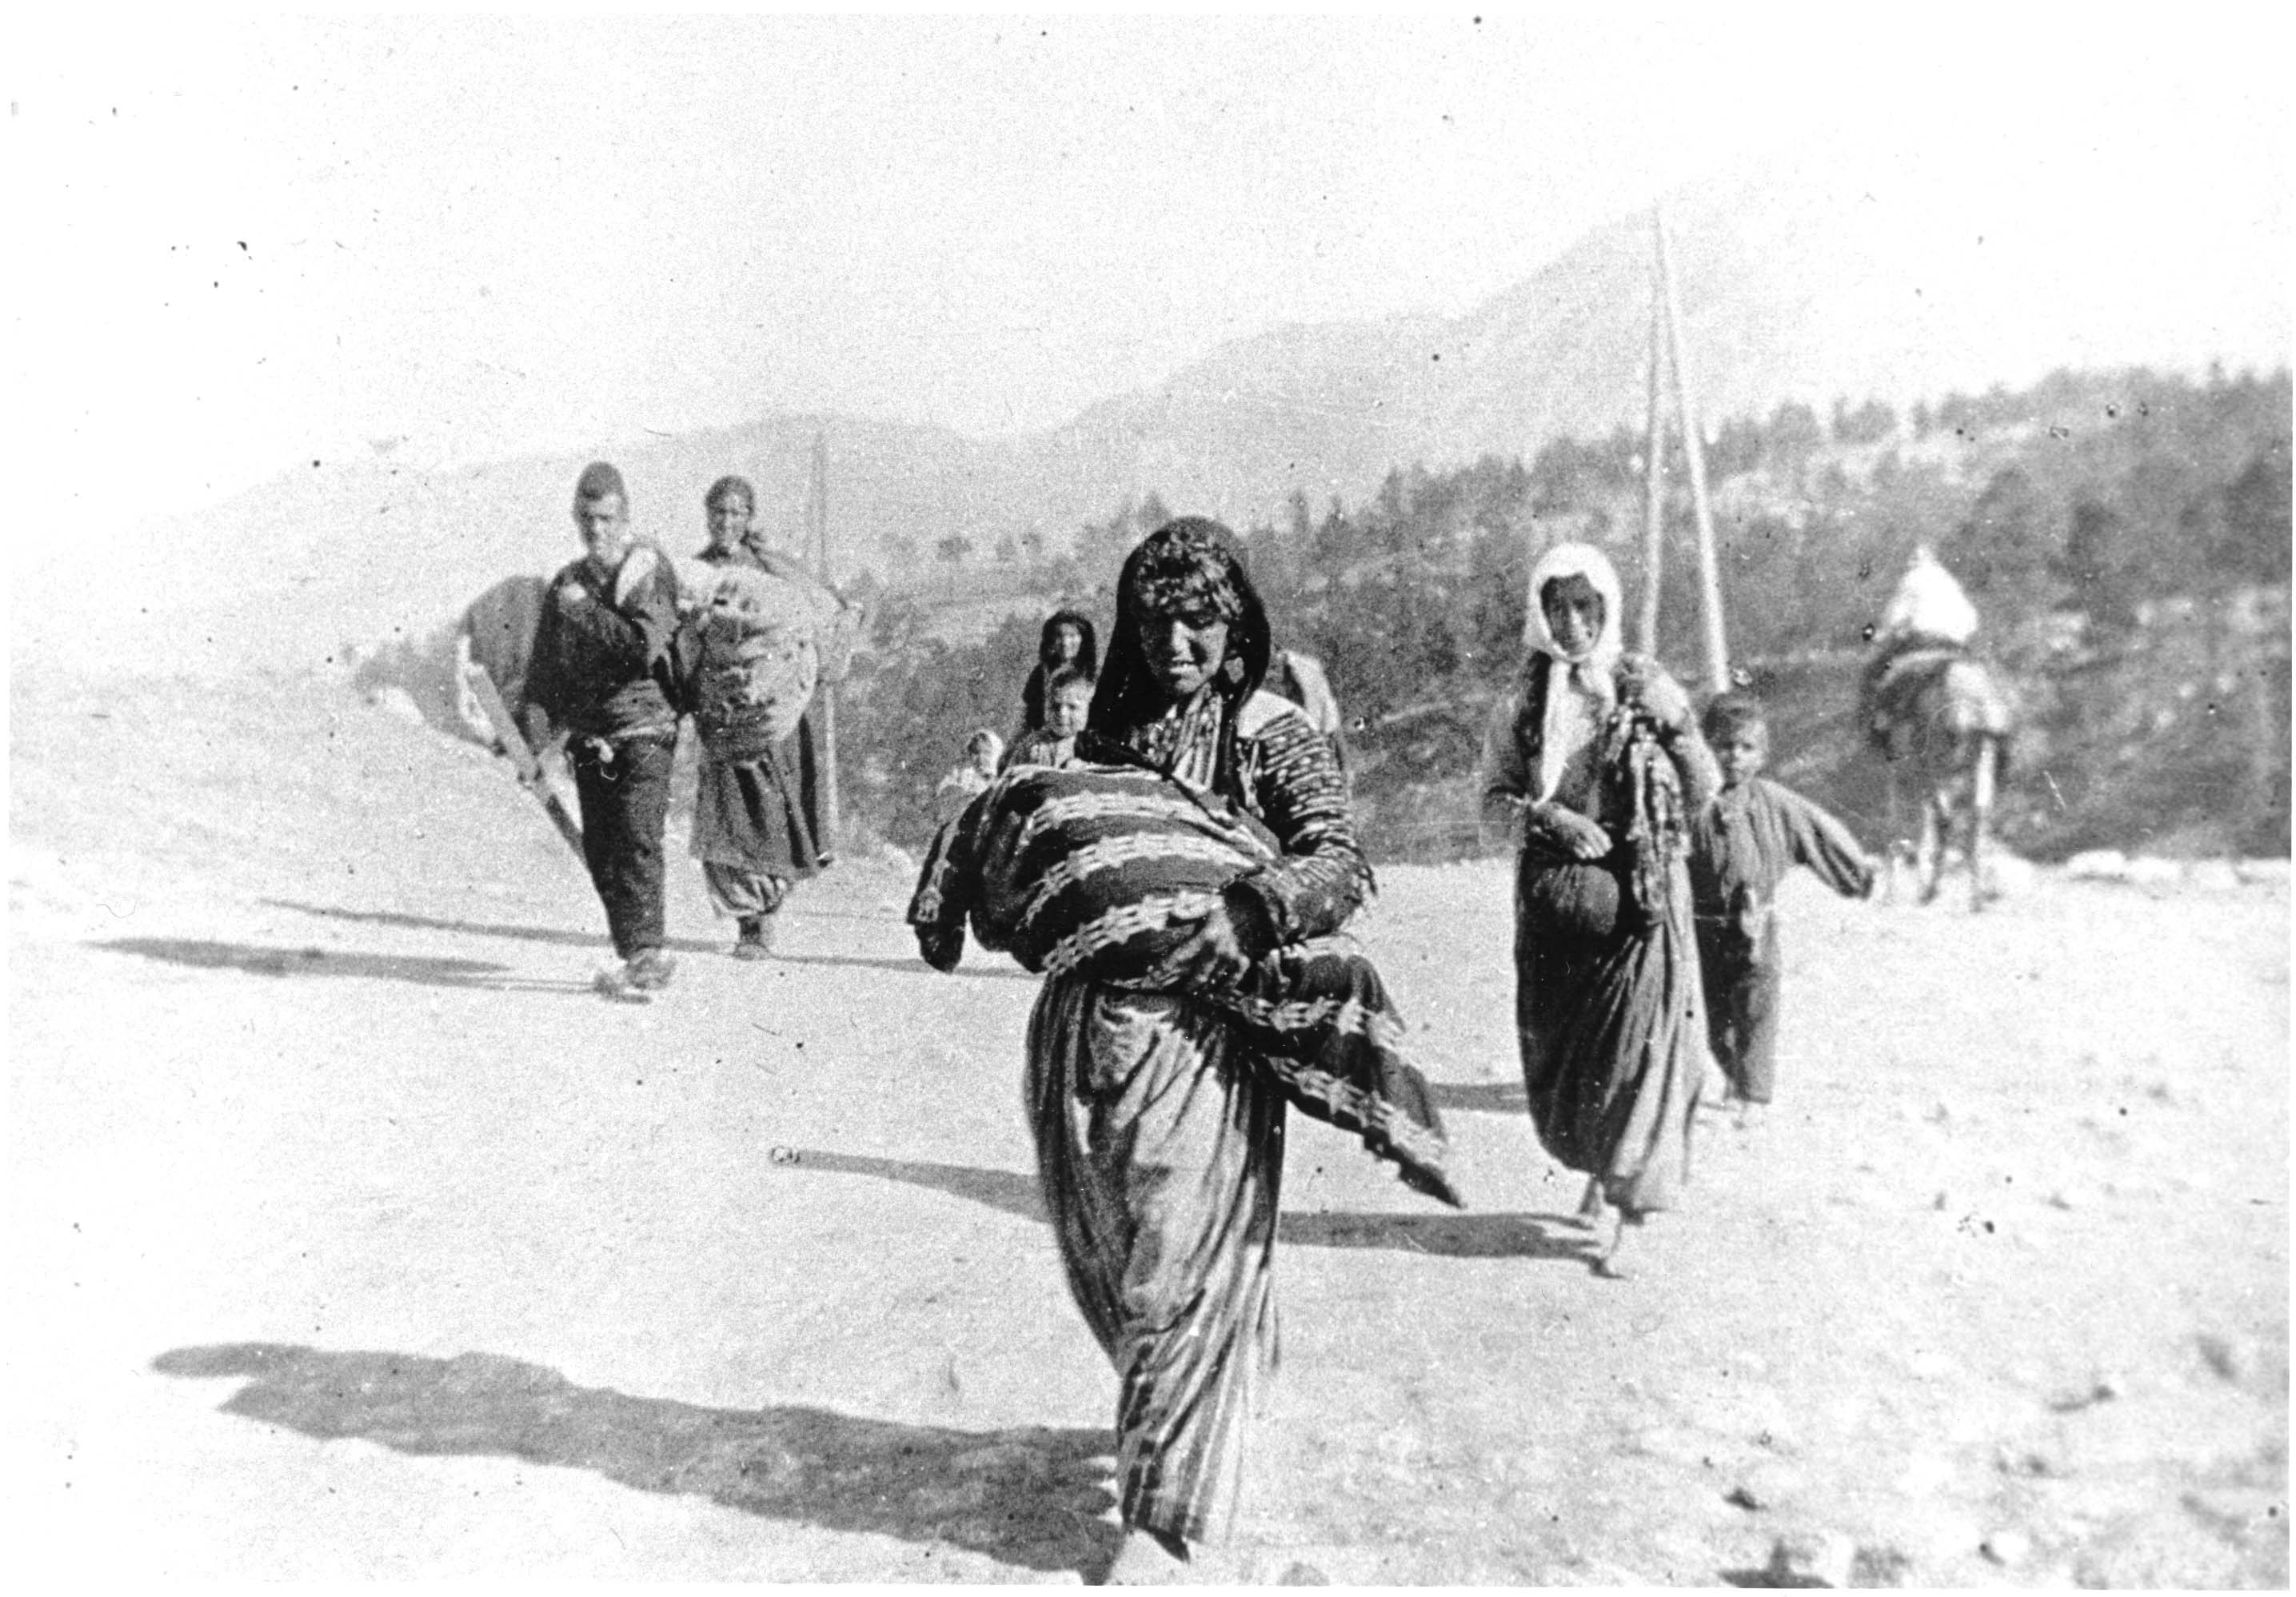 Why does Turkey continue to deny Armenian genocide? - The Boston Globe